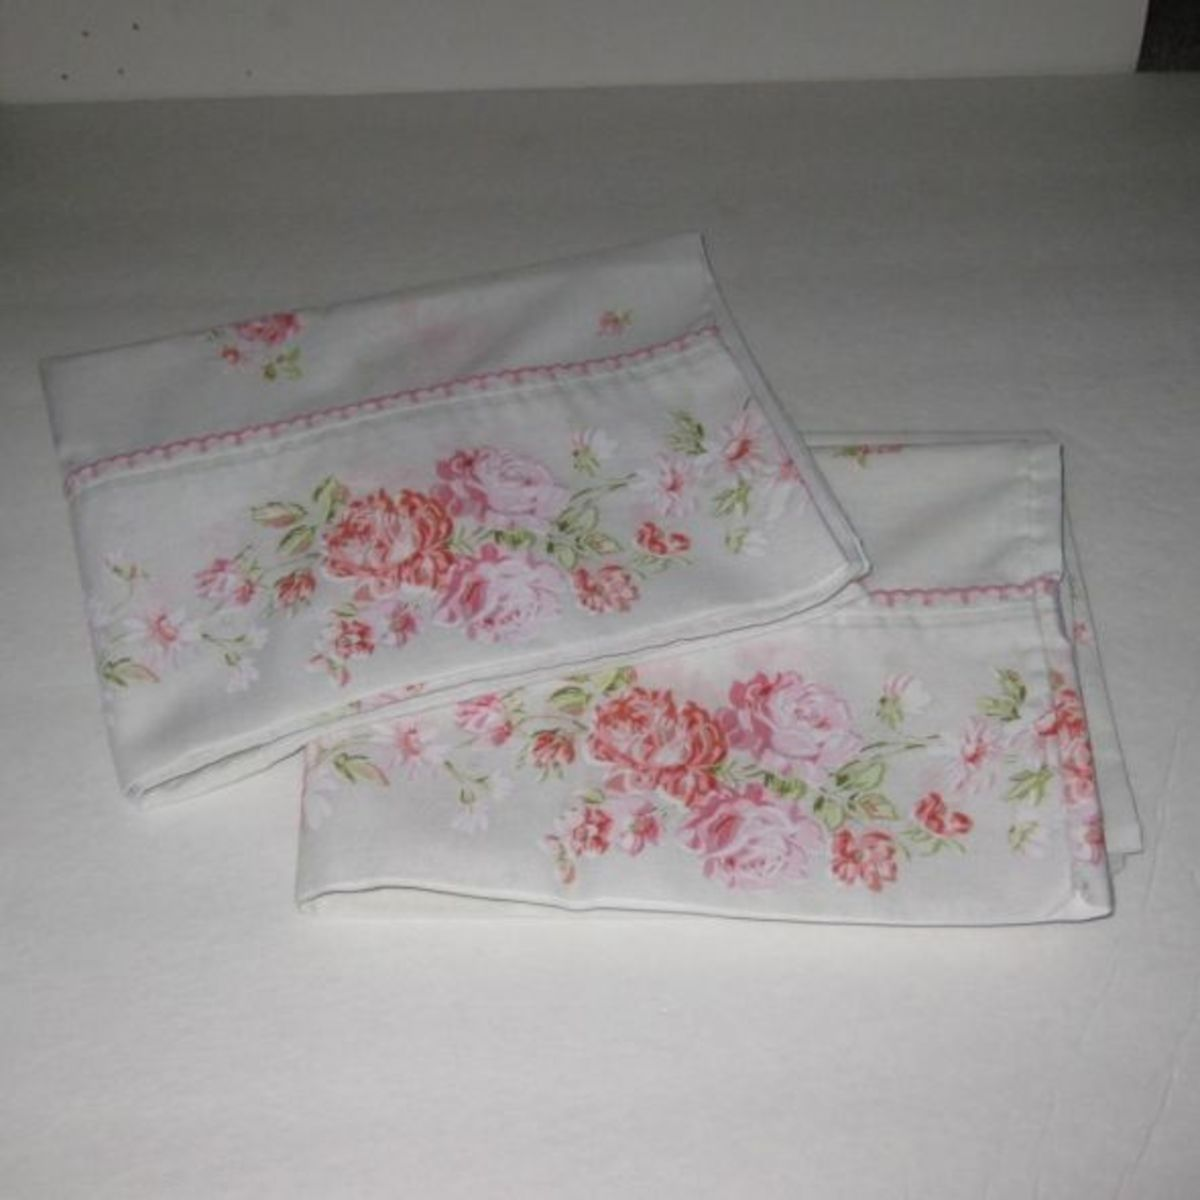 Cabbage roses on vintage pillowcases.